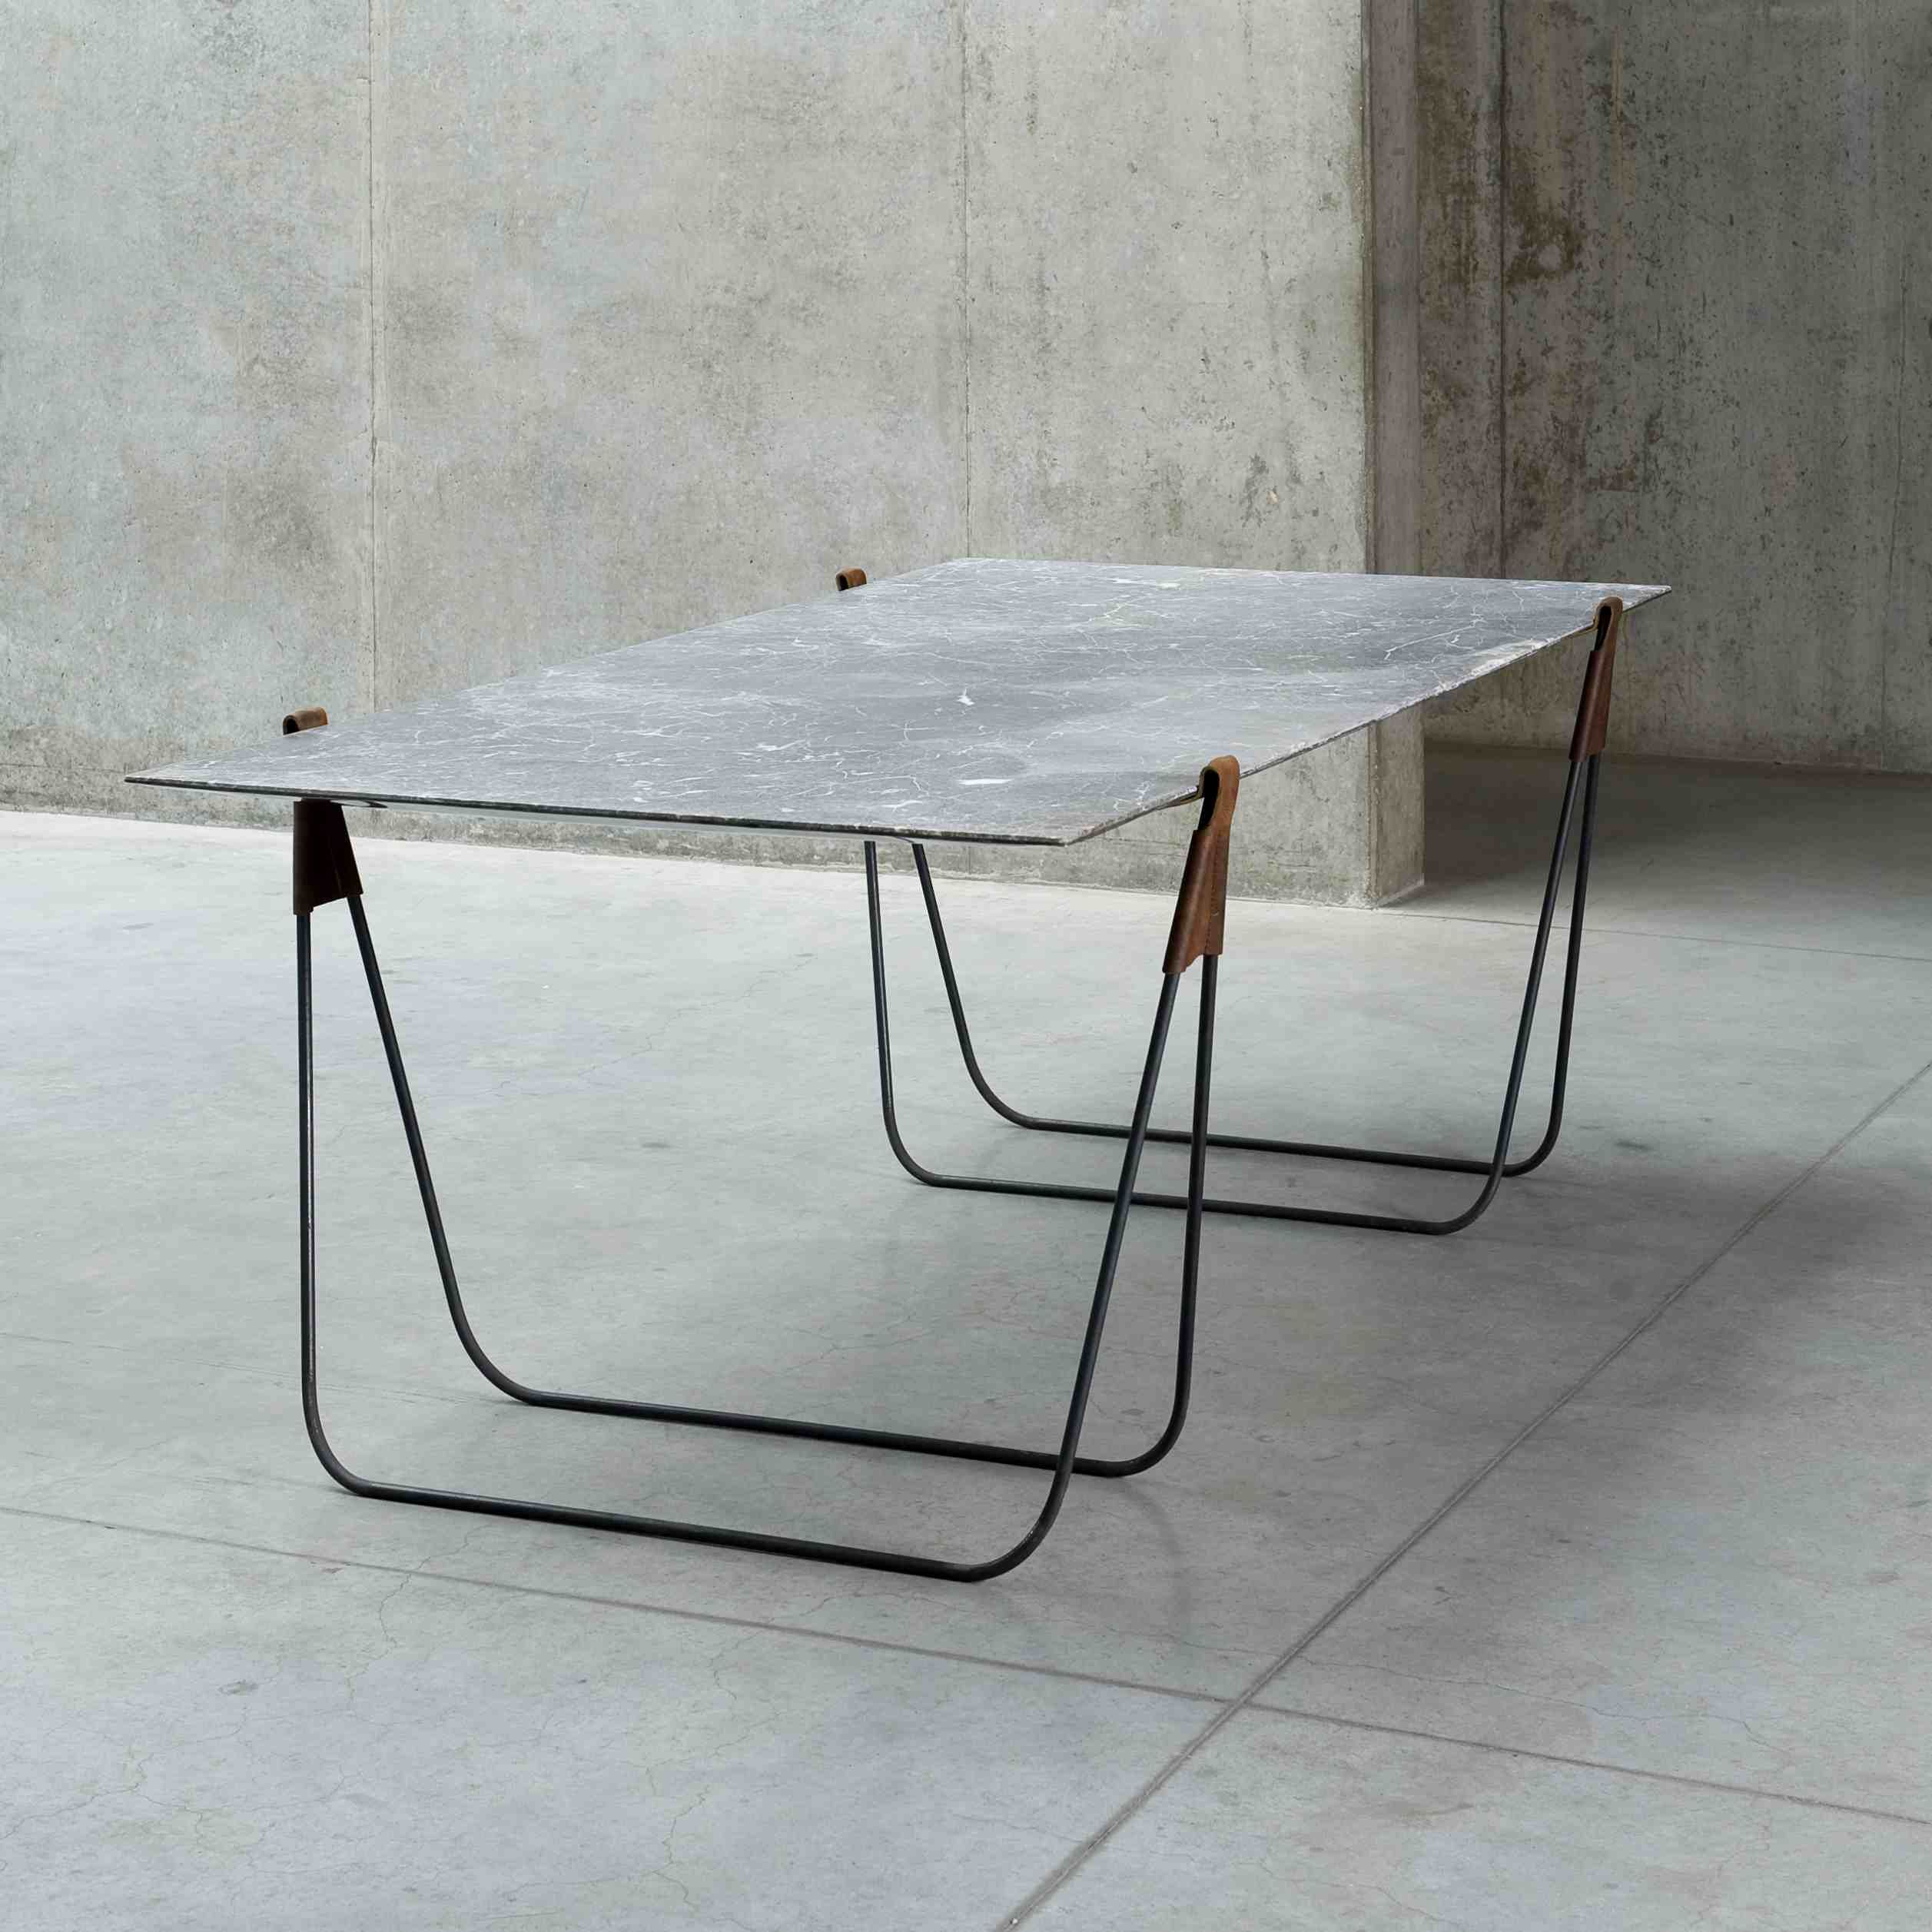 Marble Table Standing Mirror By Ben Storms 2013 Photo Isabel Rottiers Marble Table Trestle Table Furniture Dining Table